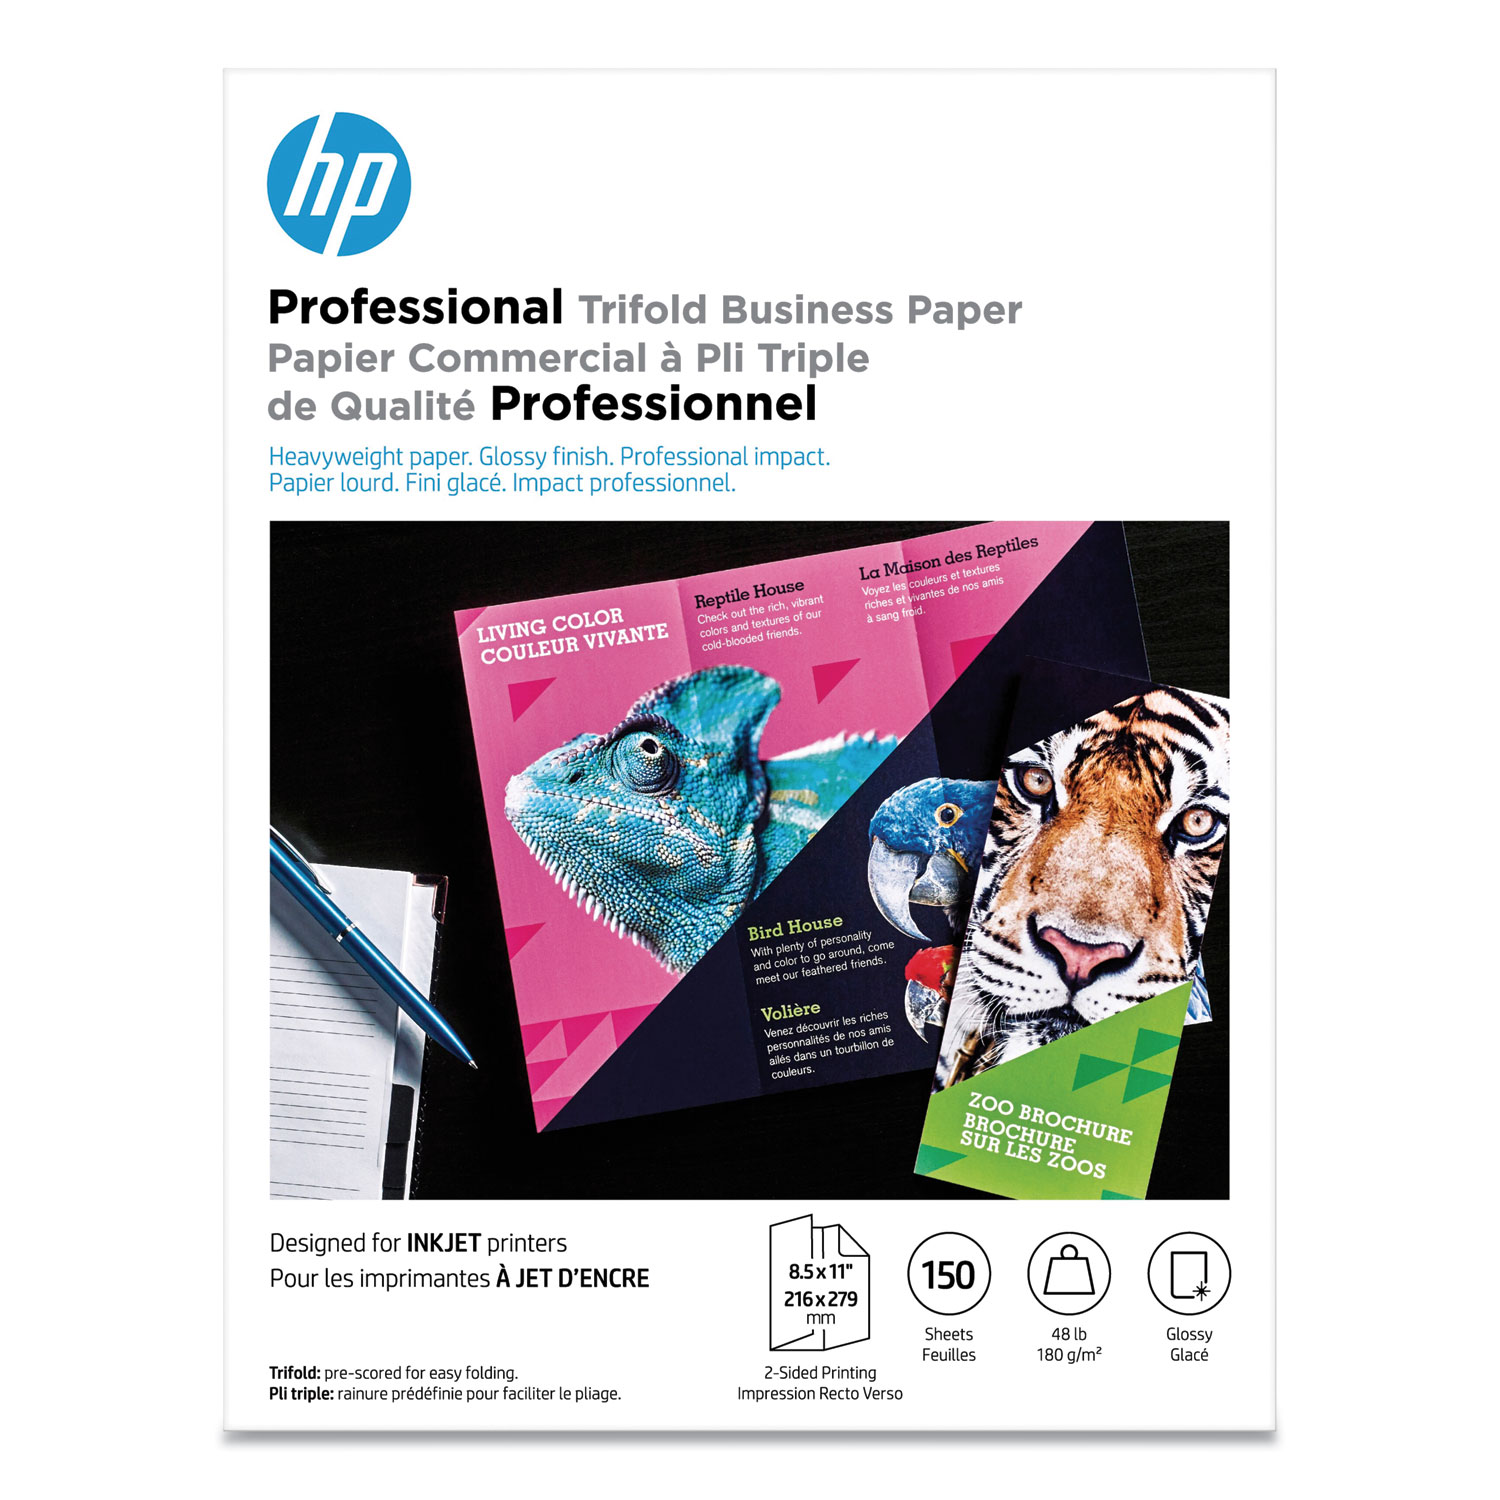 Professional Trifold Business Paper, 48 lb, 8.5 x 11, Glossy White, 150/Pack